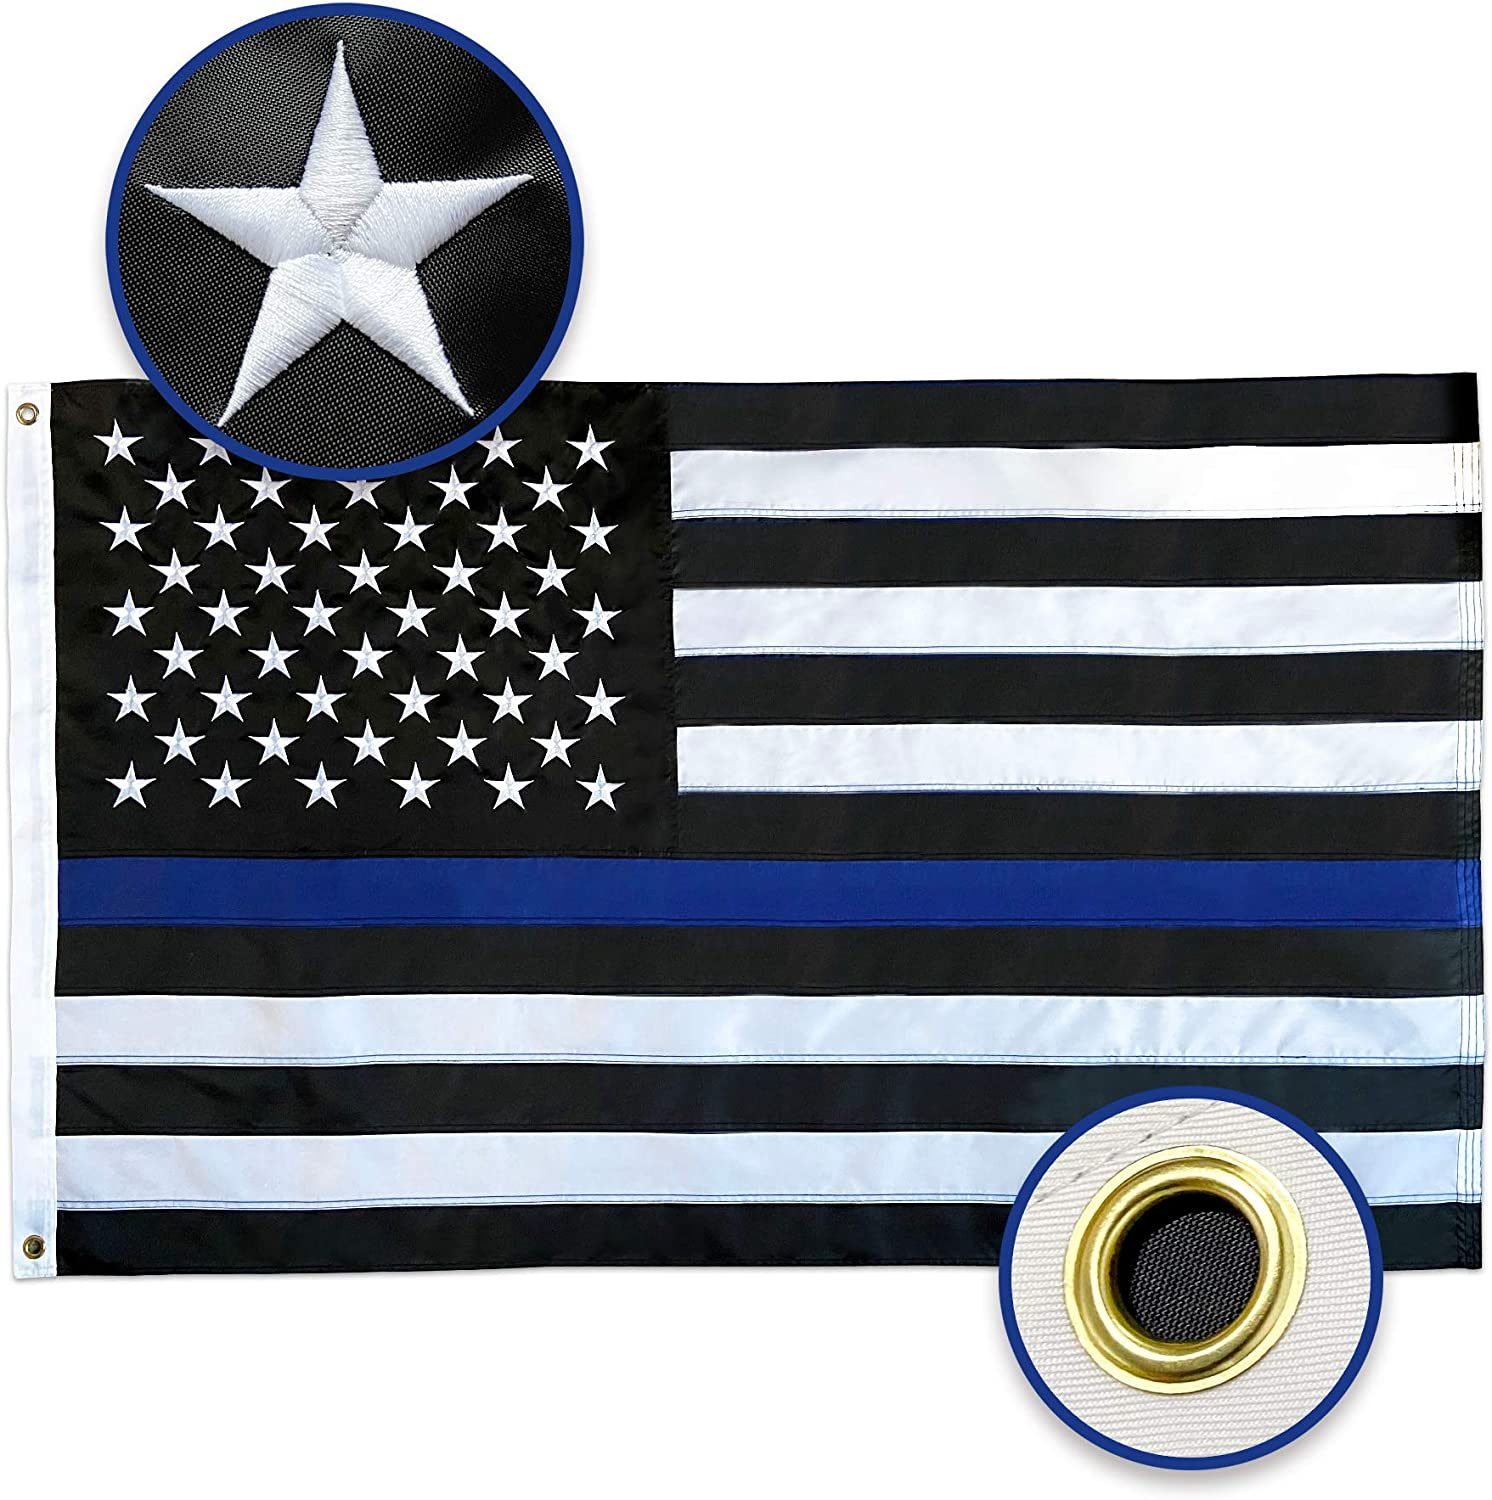 Feezen Thin Blue Line Flag 3x5 USA Flag with Brass Grommets, Embroidered Stars, Sewn Stripes, Black White and Blue American Flag Police Flag Honoring Law Enforcement Officers